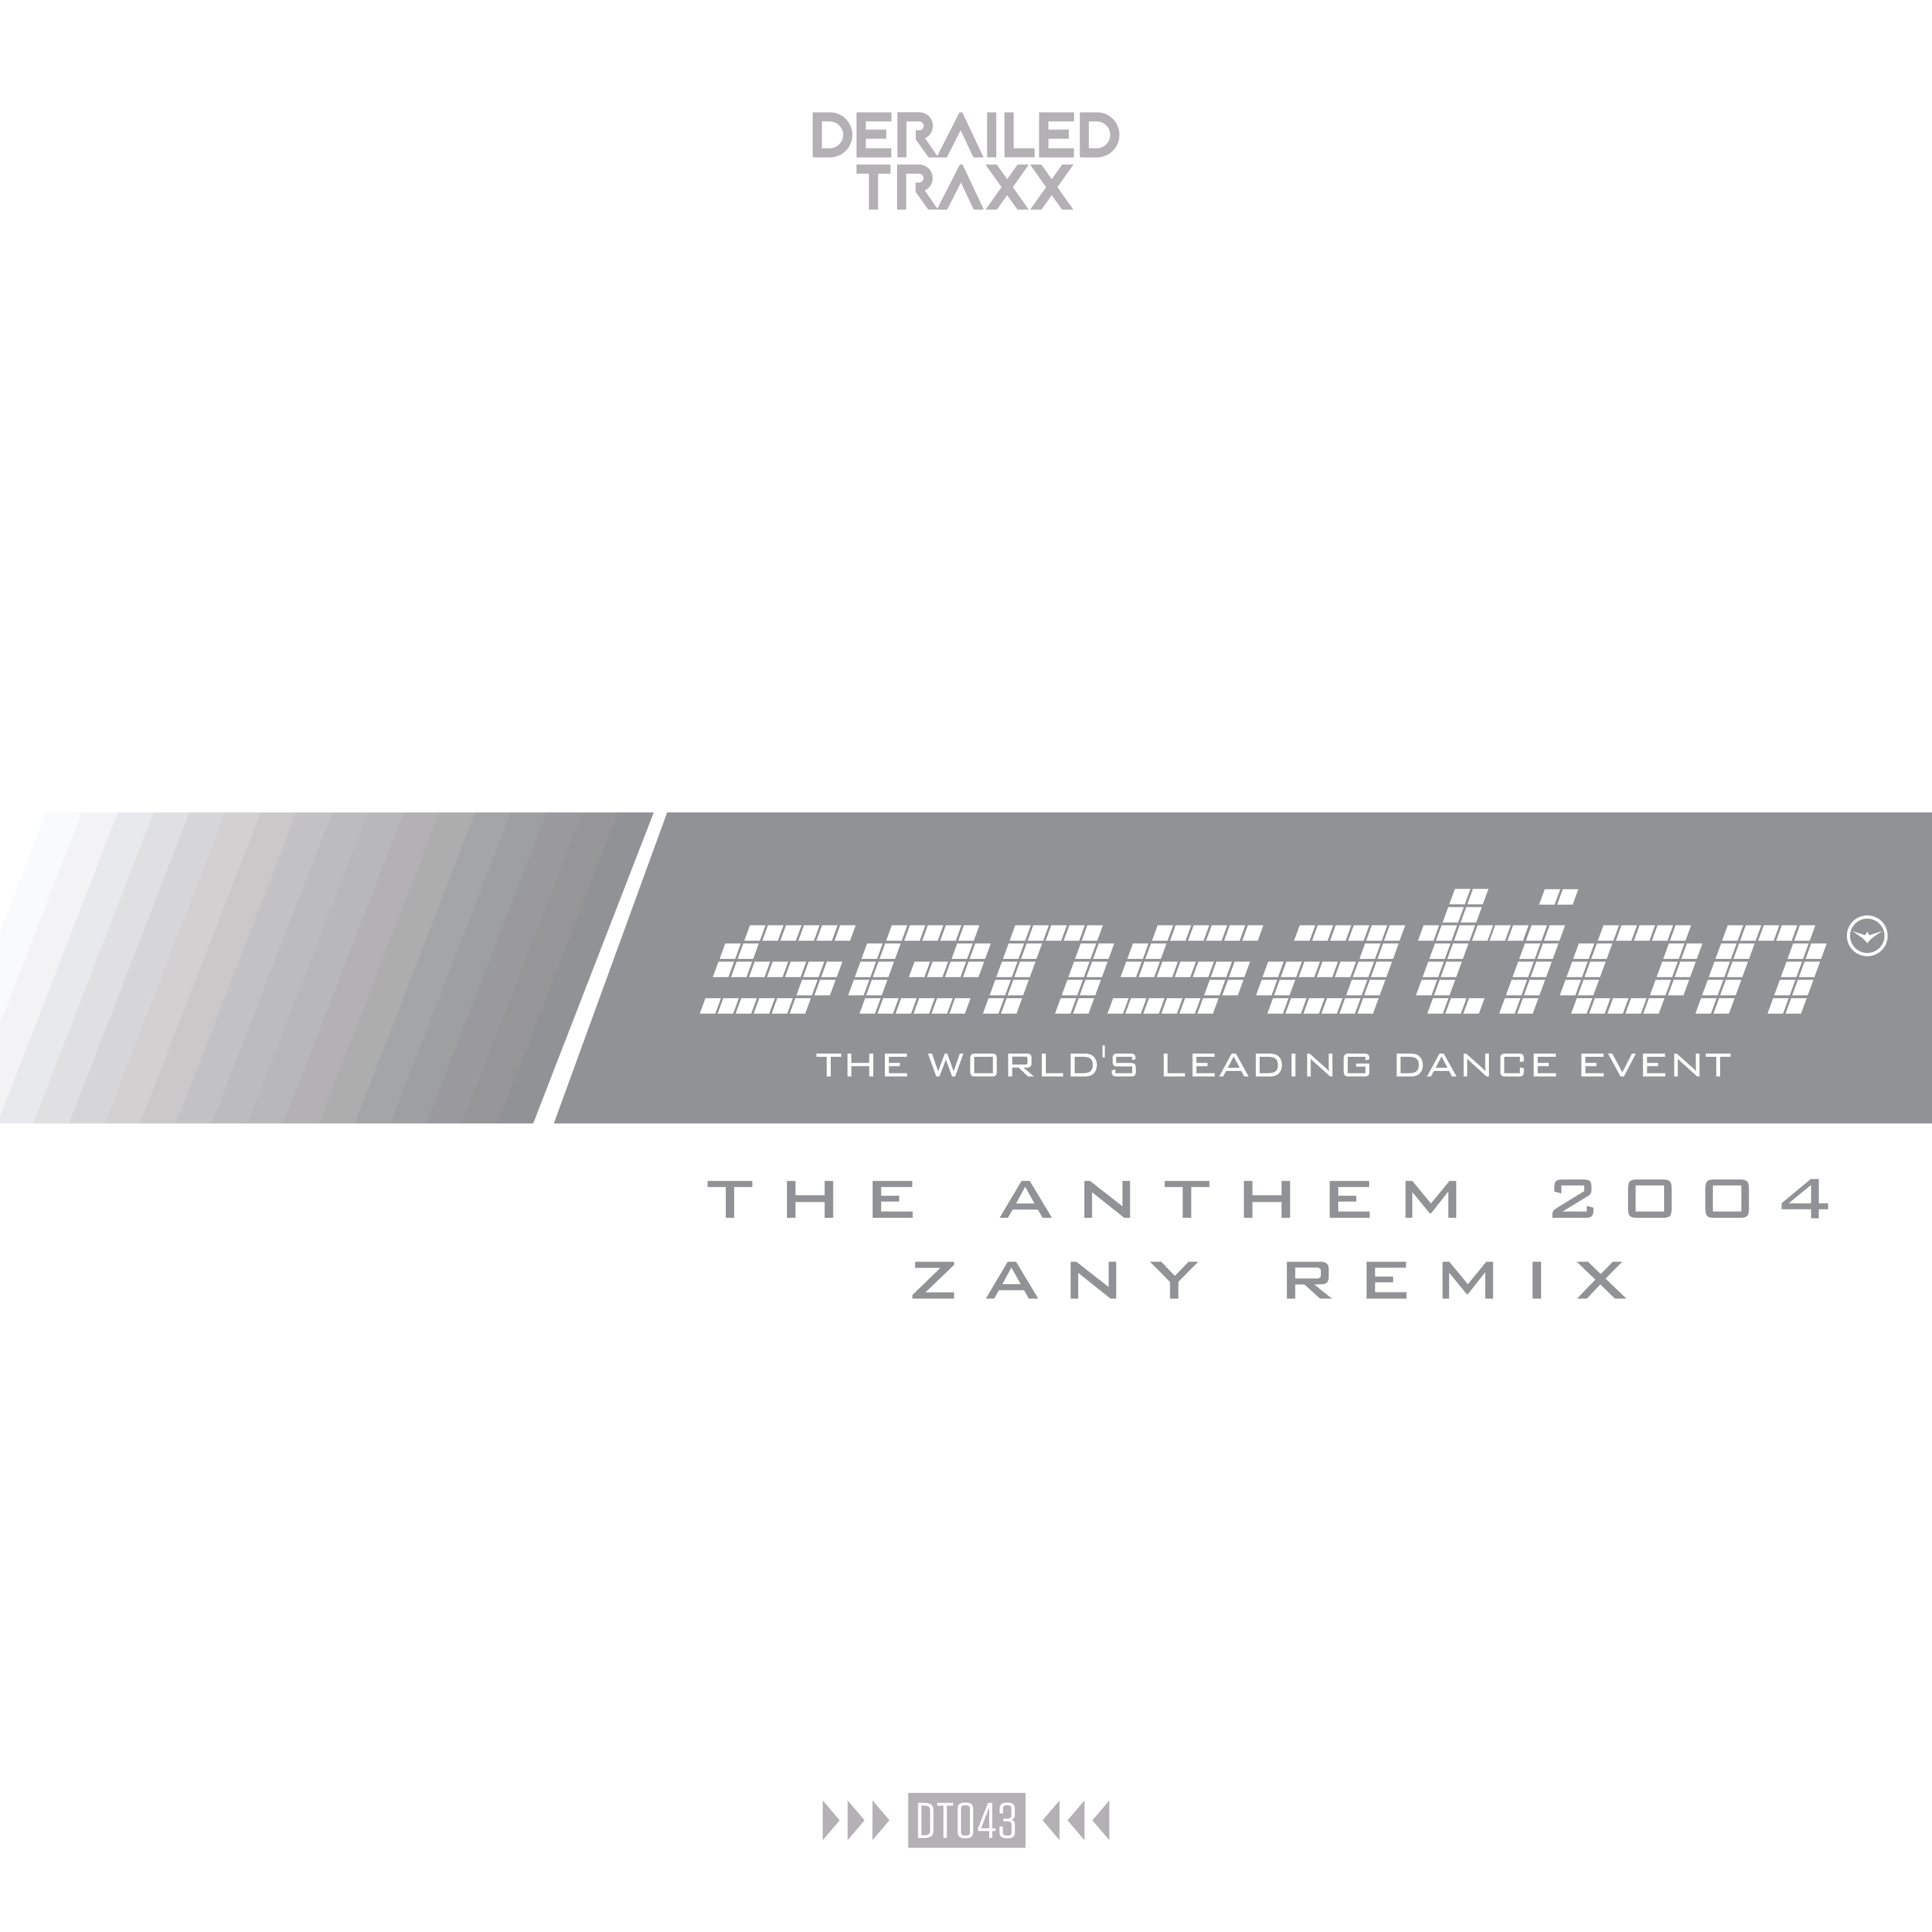 Sensation - The Anthem 2004 (Zany Remix) [DERAILED TRAXX] DT043